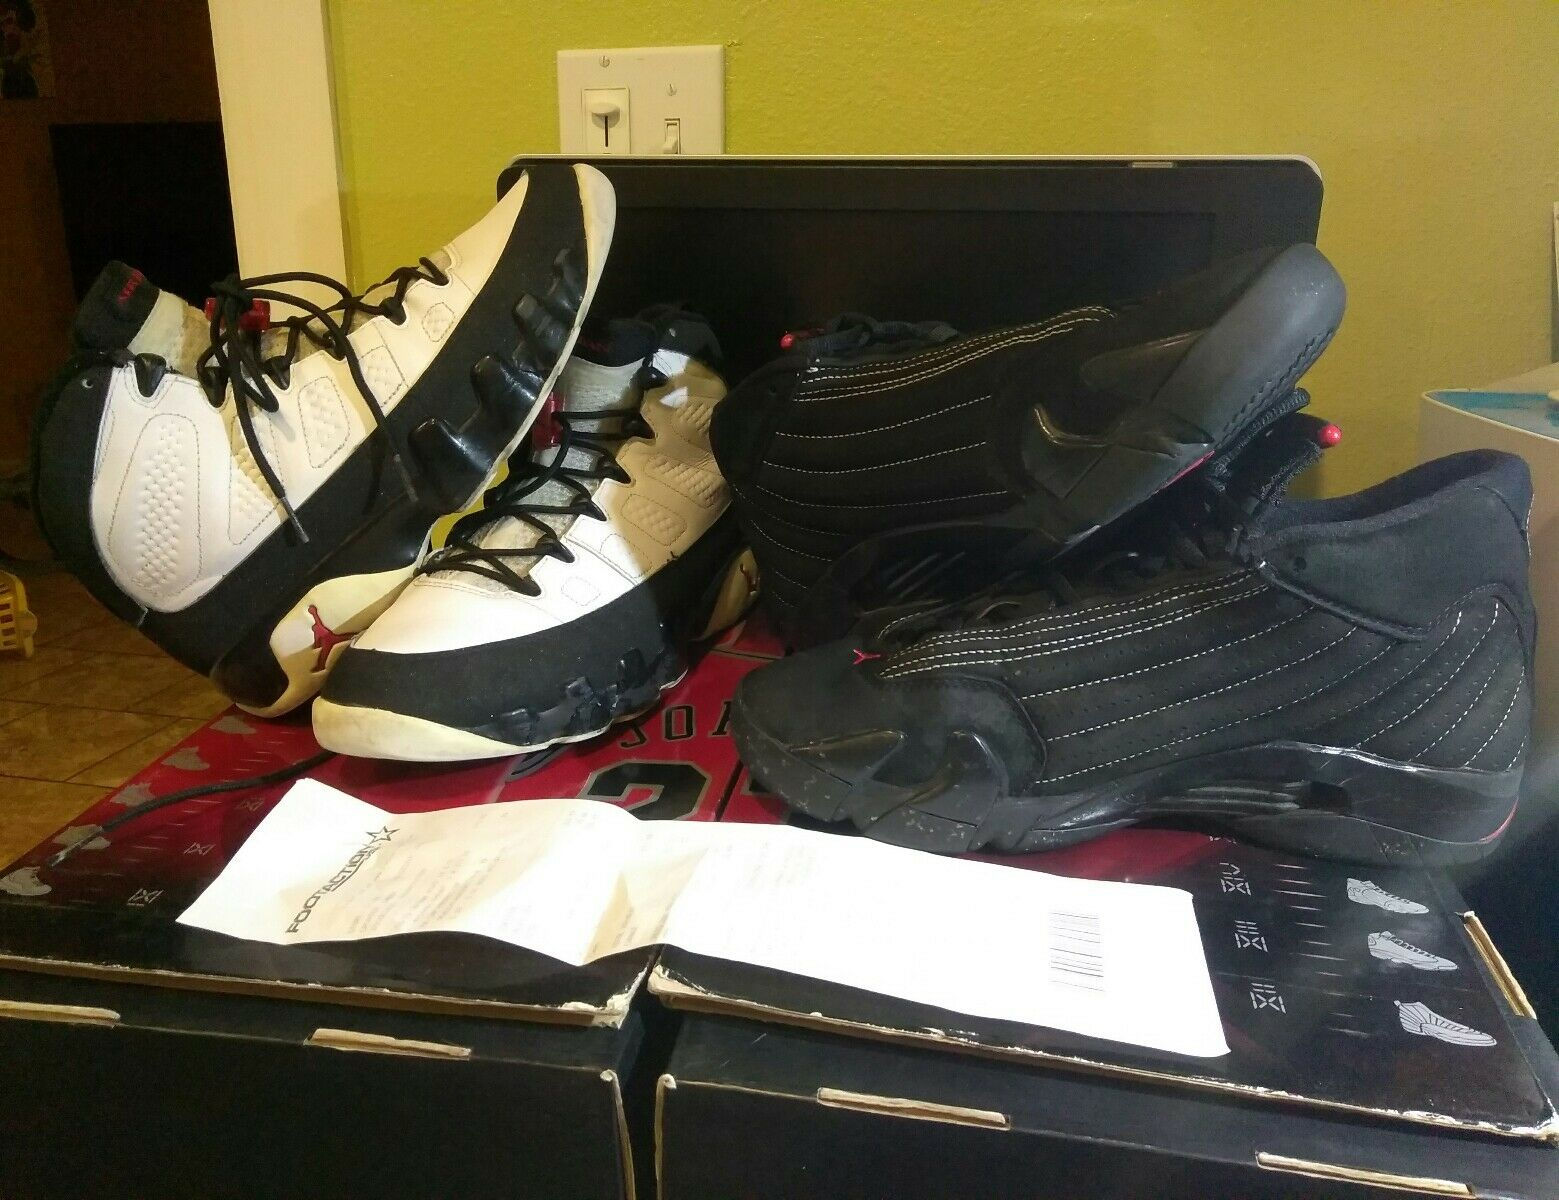 Nike Air Jordan Collezione 14 9 Countdown Pack  318541-992 Sz 8 shoes 03-28b